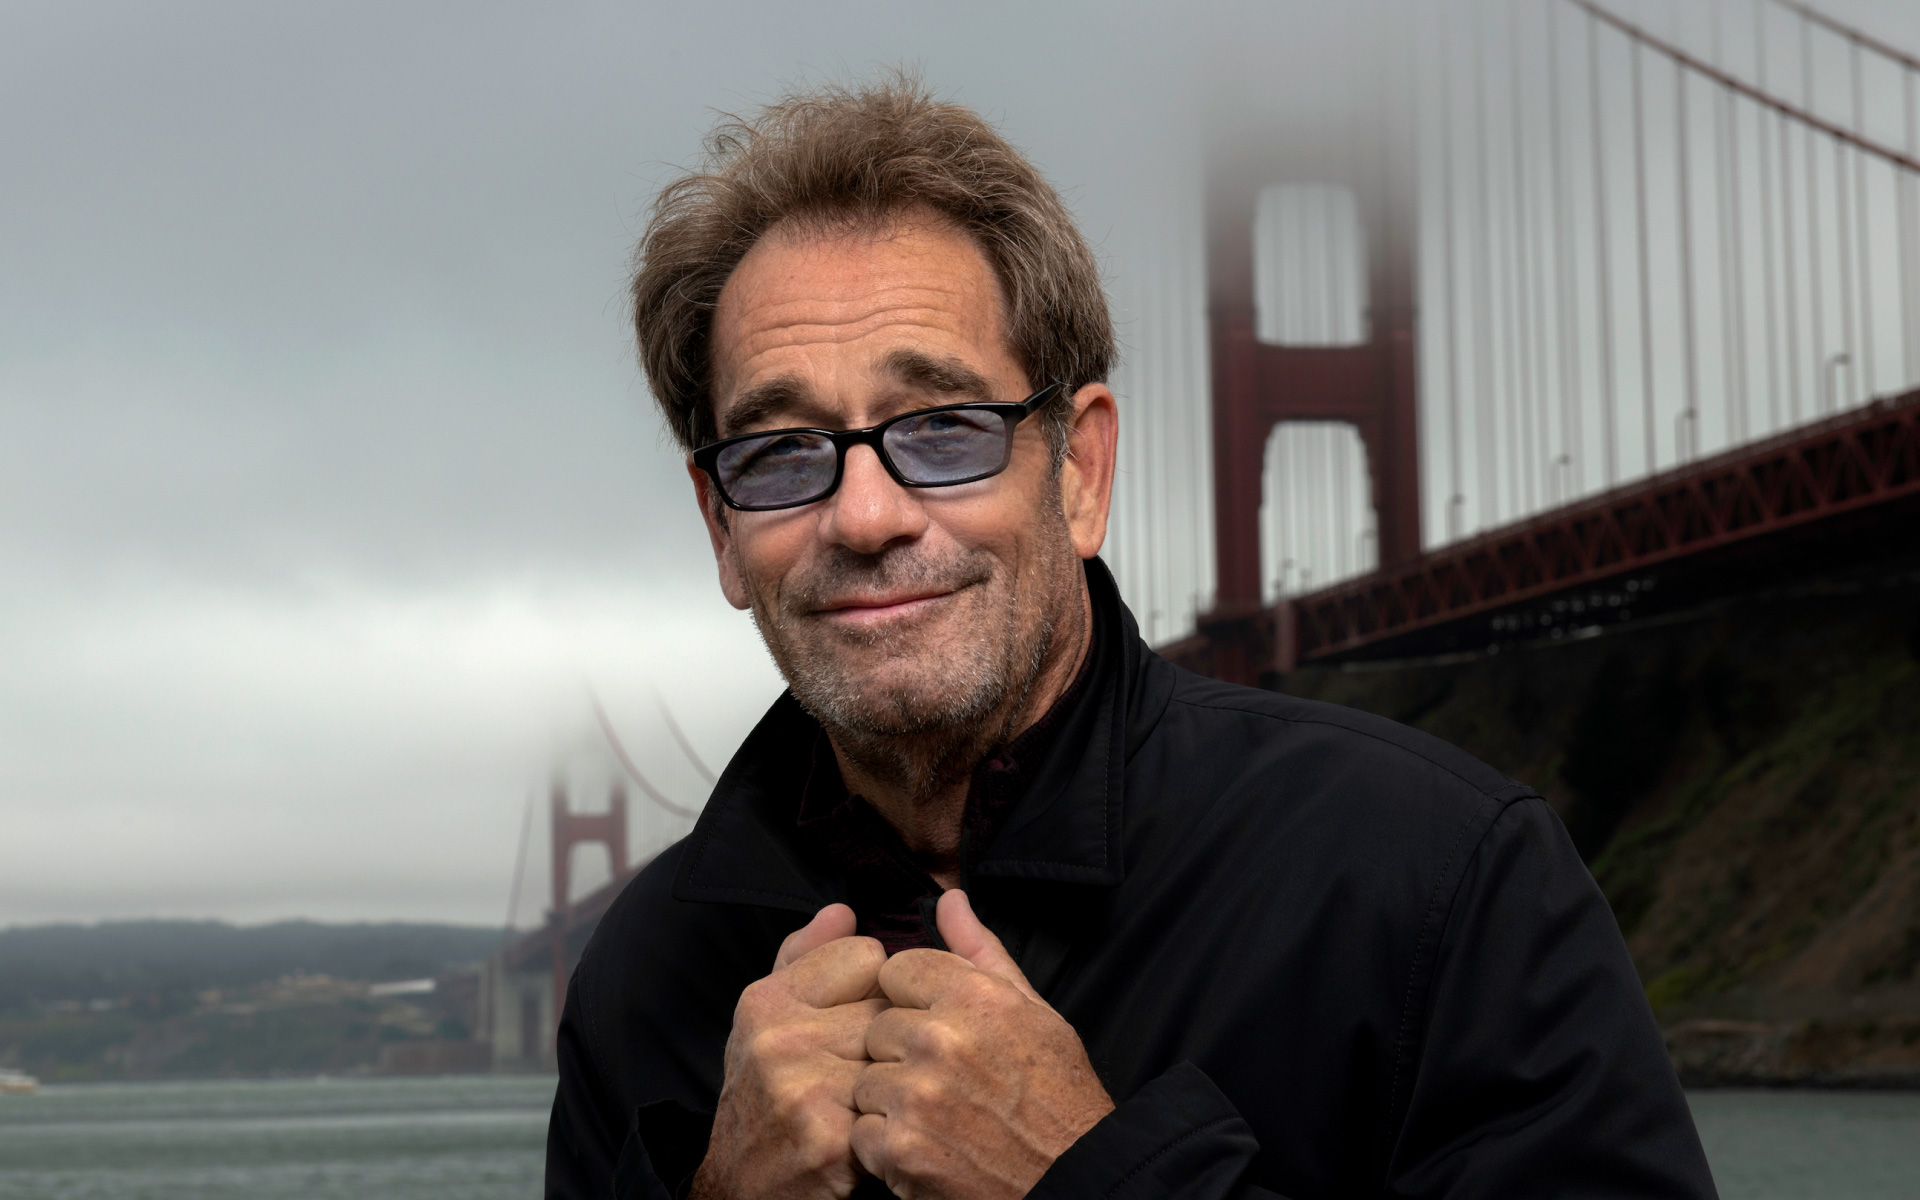 Huey Lewis and the News on His Hearing, the Power of Love, and More